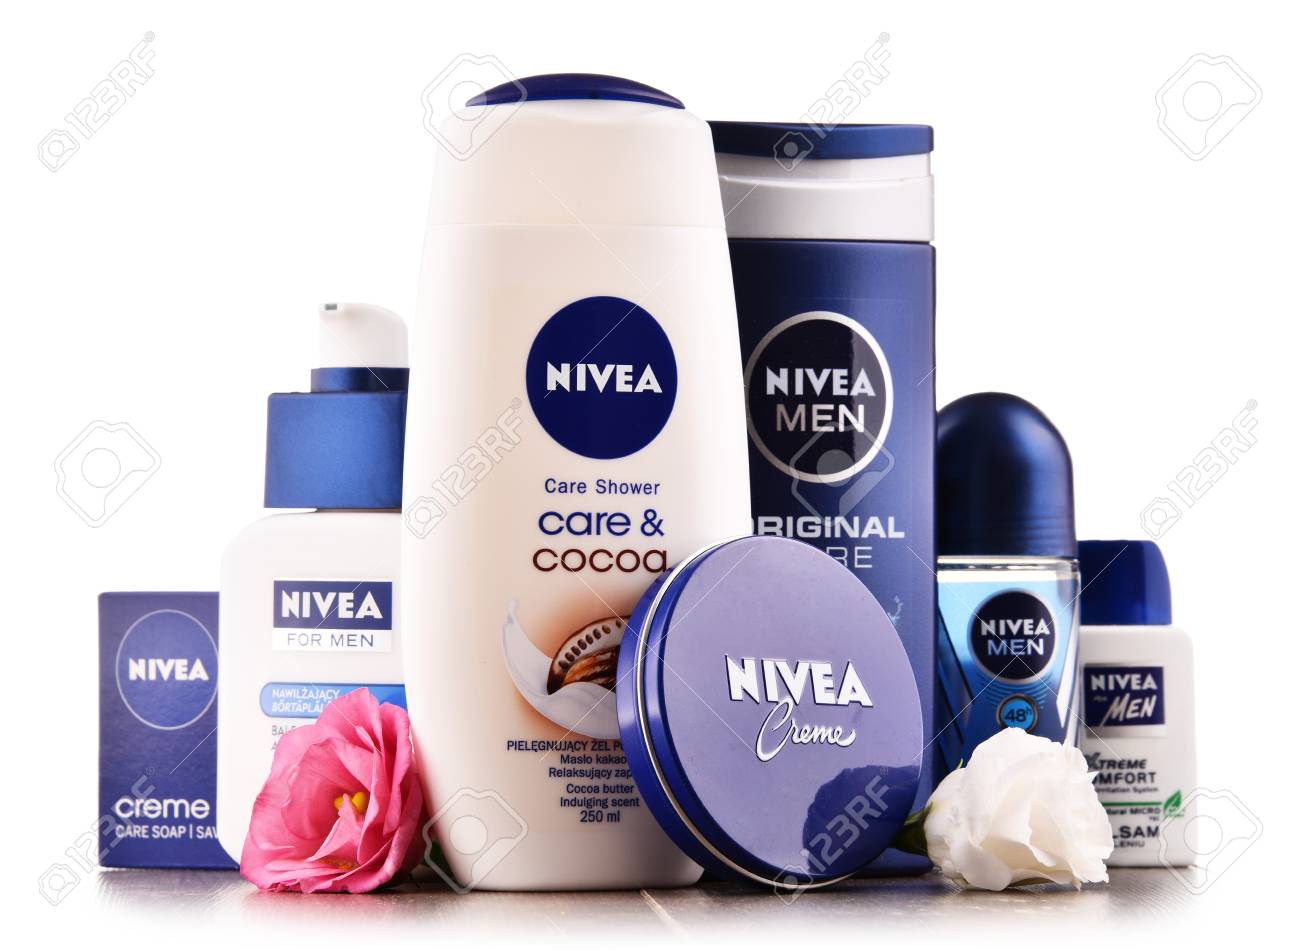 POZNAN, POLAND - AUG 11, 2017: Nivea is a German personal care brand that specializes in skin- and body-care products. It is owned by Beiersdorf Global AG headquartered in Hamburg. - 84383663